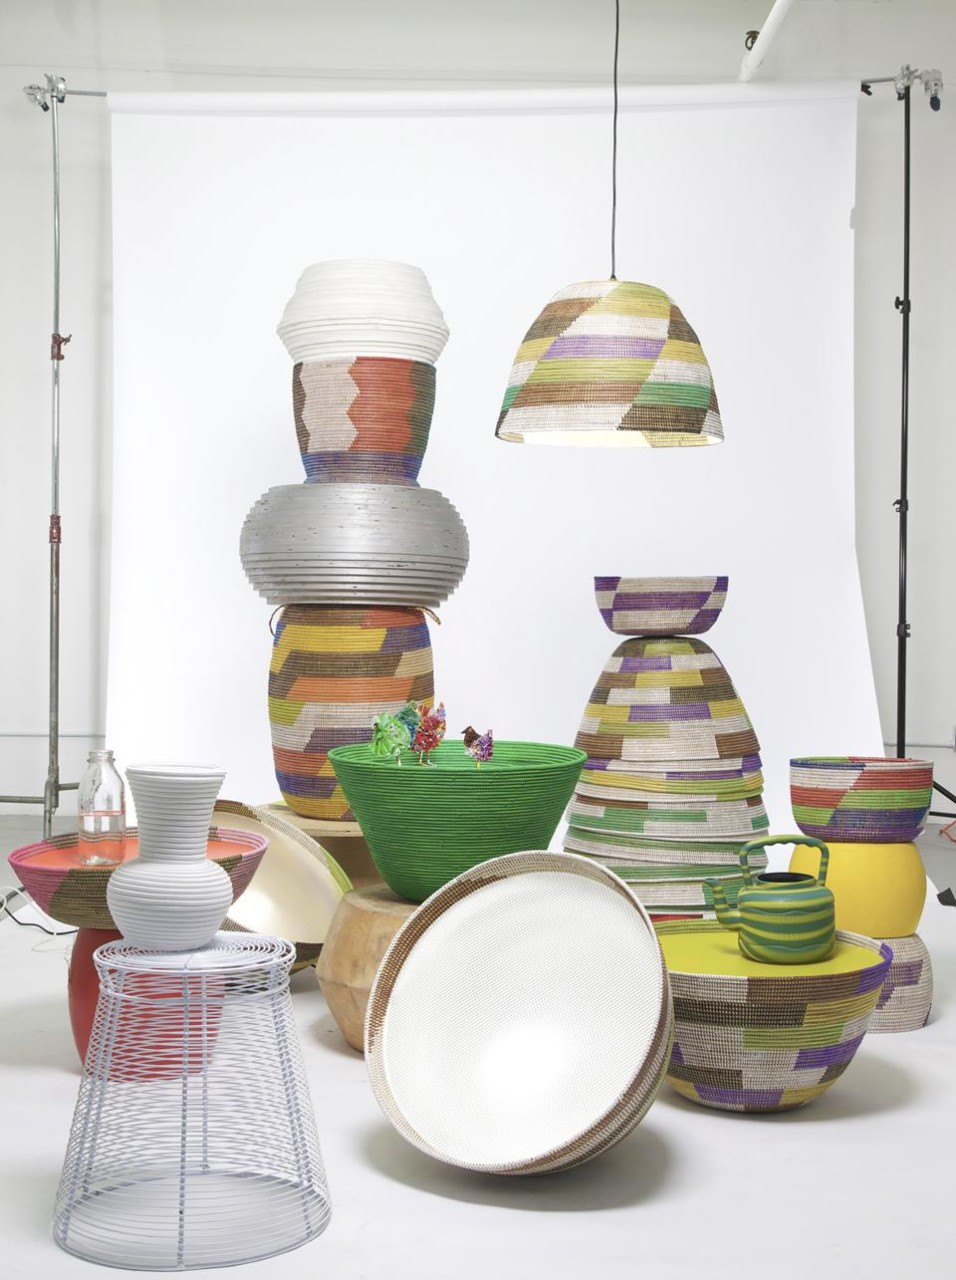 Prototypes & Material Compositions